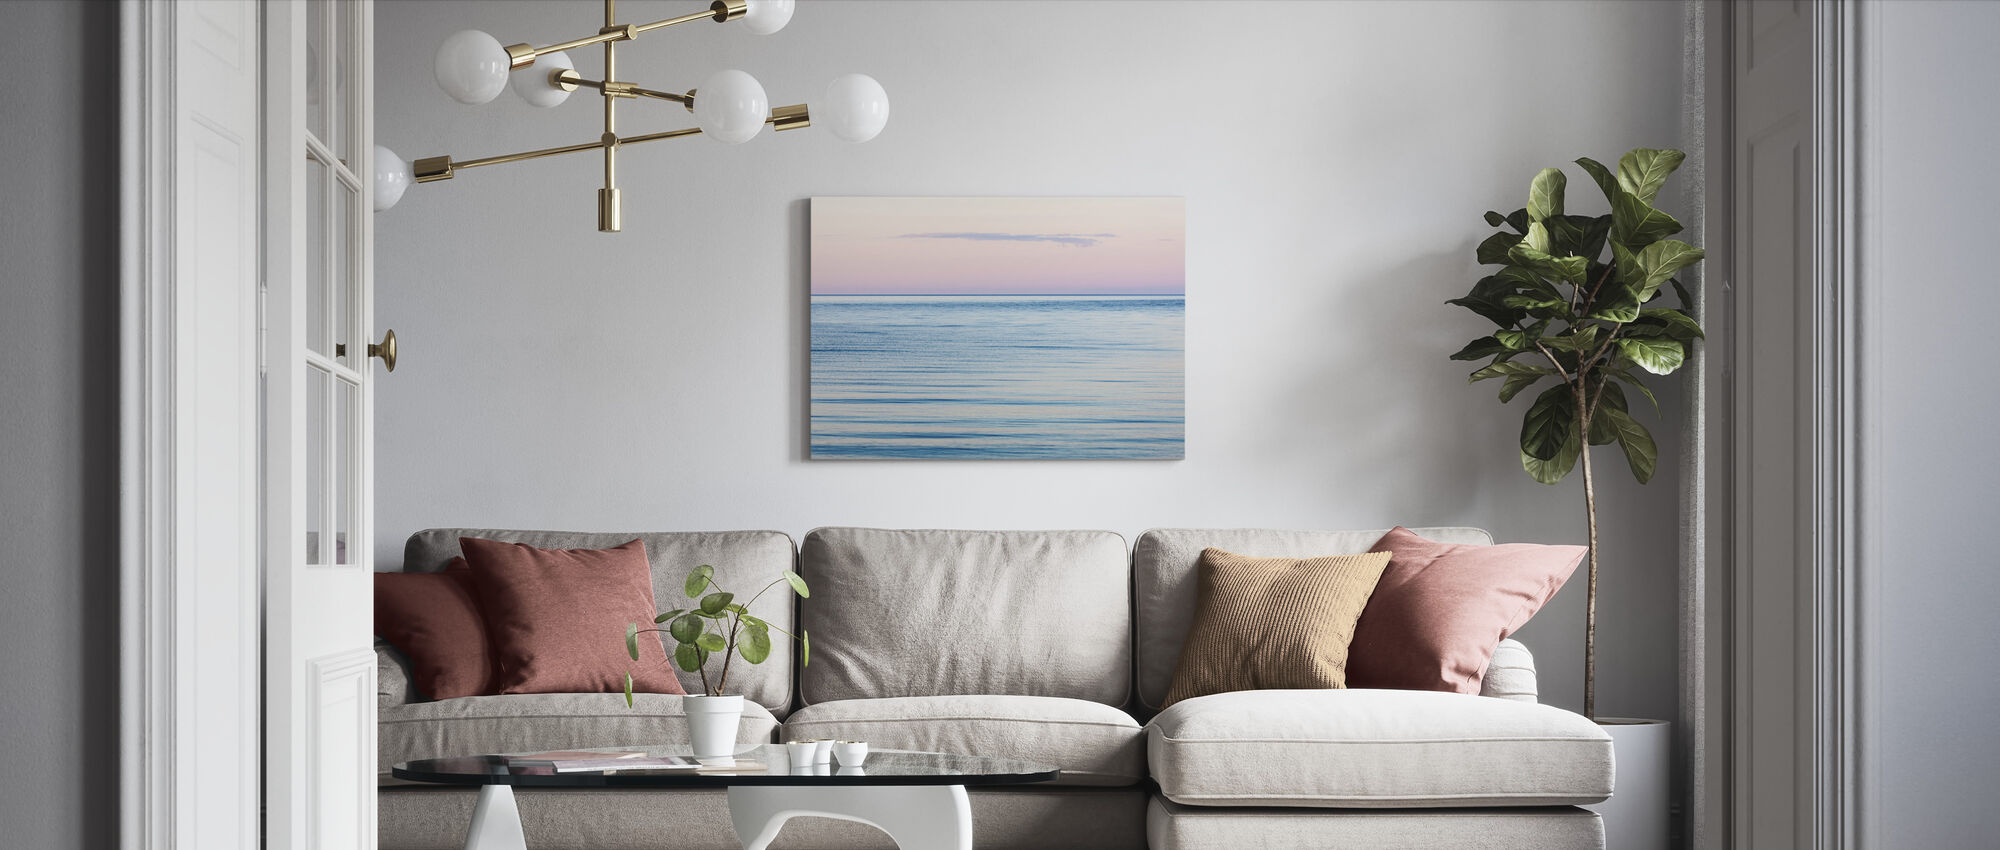 Pink and Blue Dream - Canvas print - Living Room